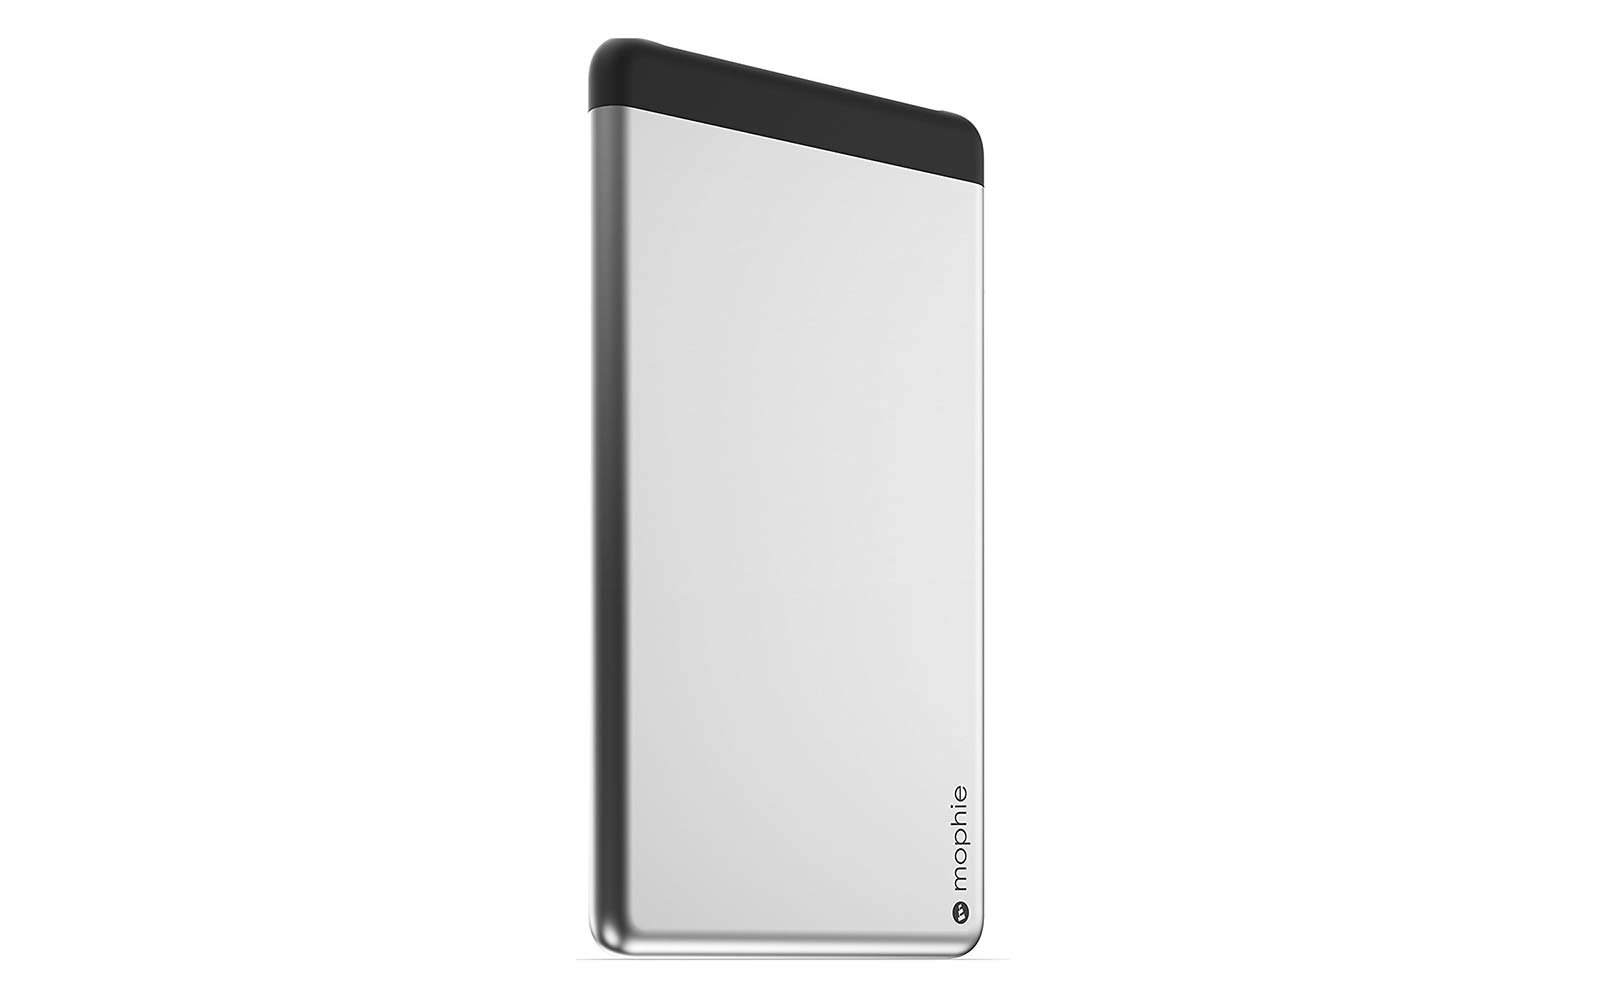 Travel Packing Essentials mophie portable battery phone charger